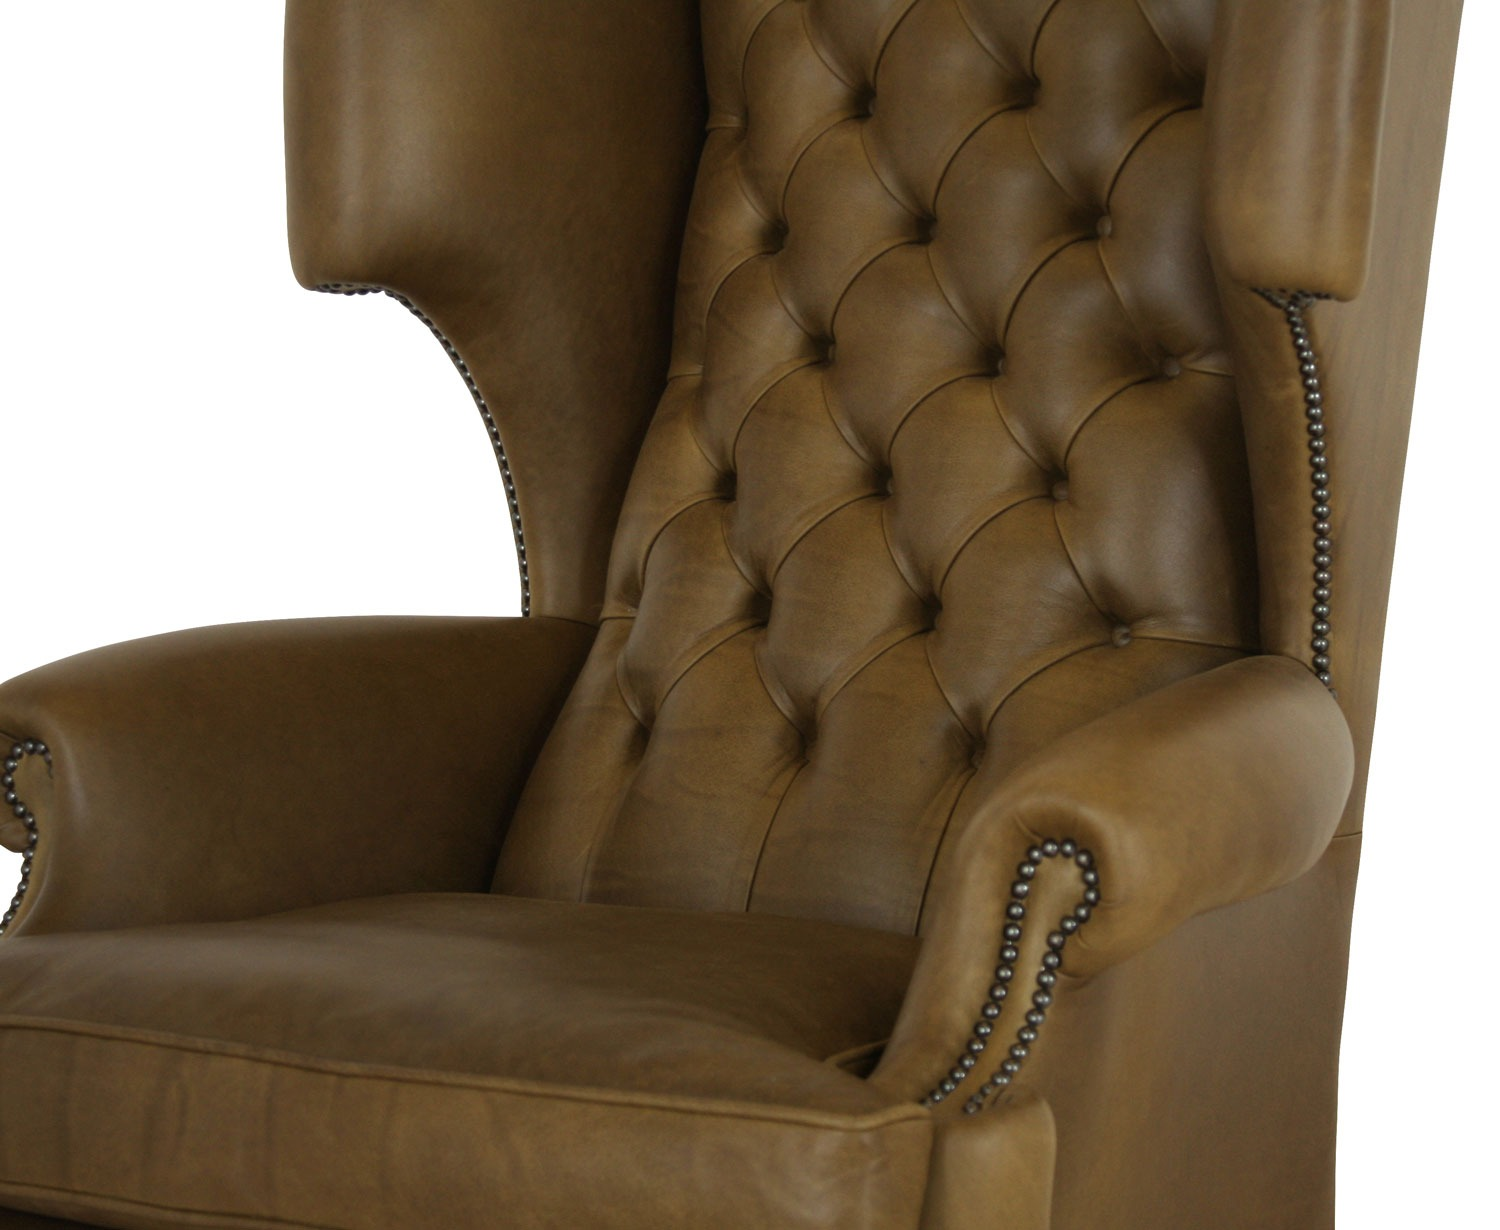 Elizabethan leather wing chair - Olive